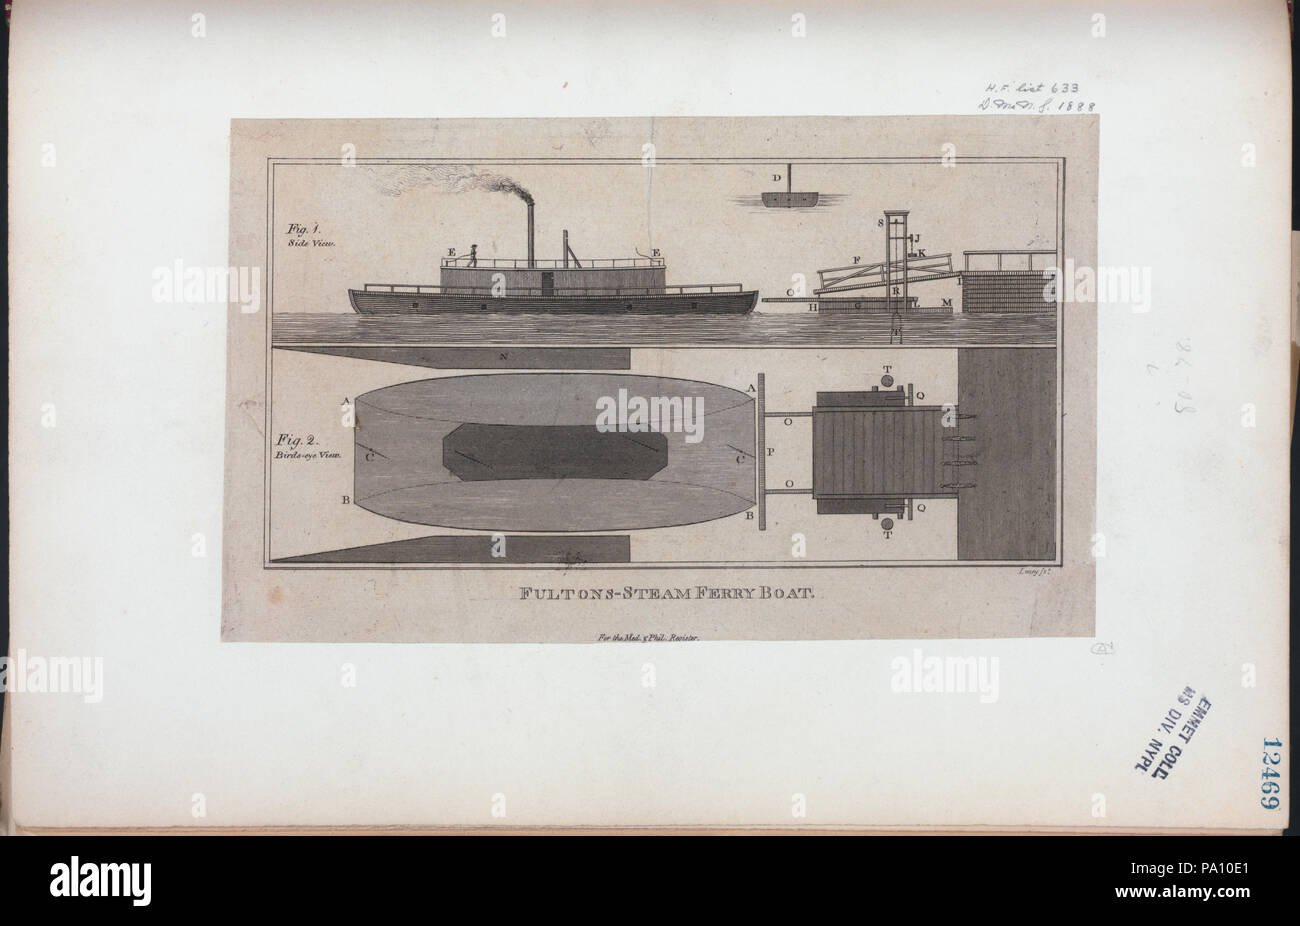 683 Fultons-steam ferry boat (NYPL Hades-255944-430963 Stock